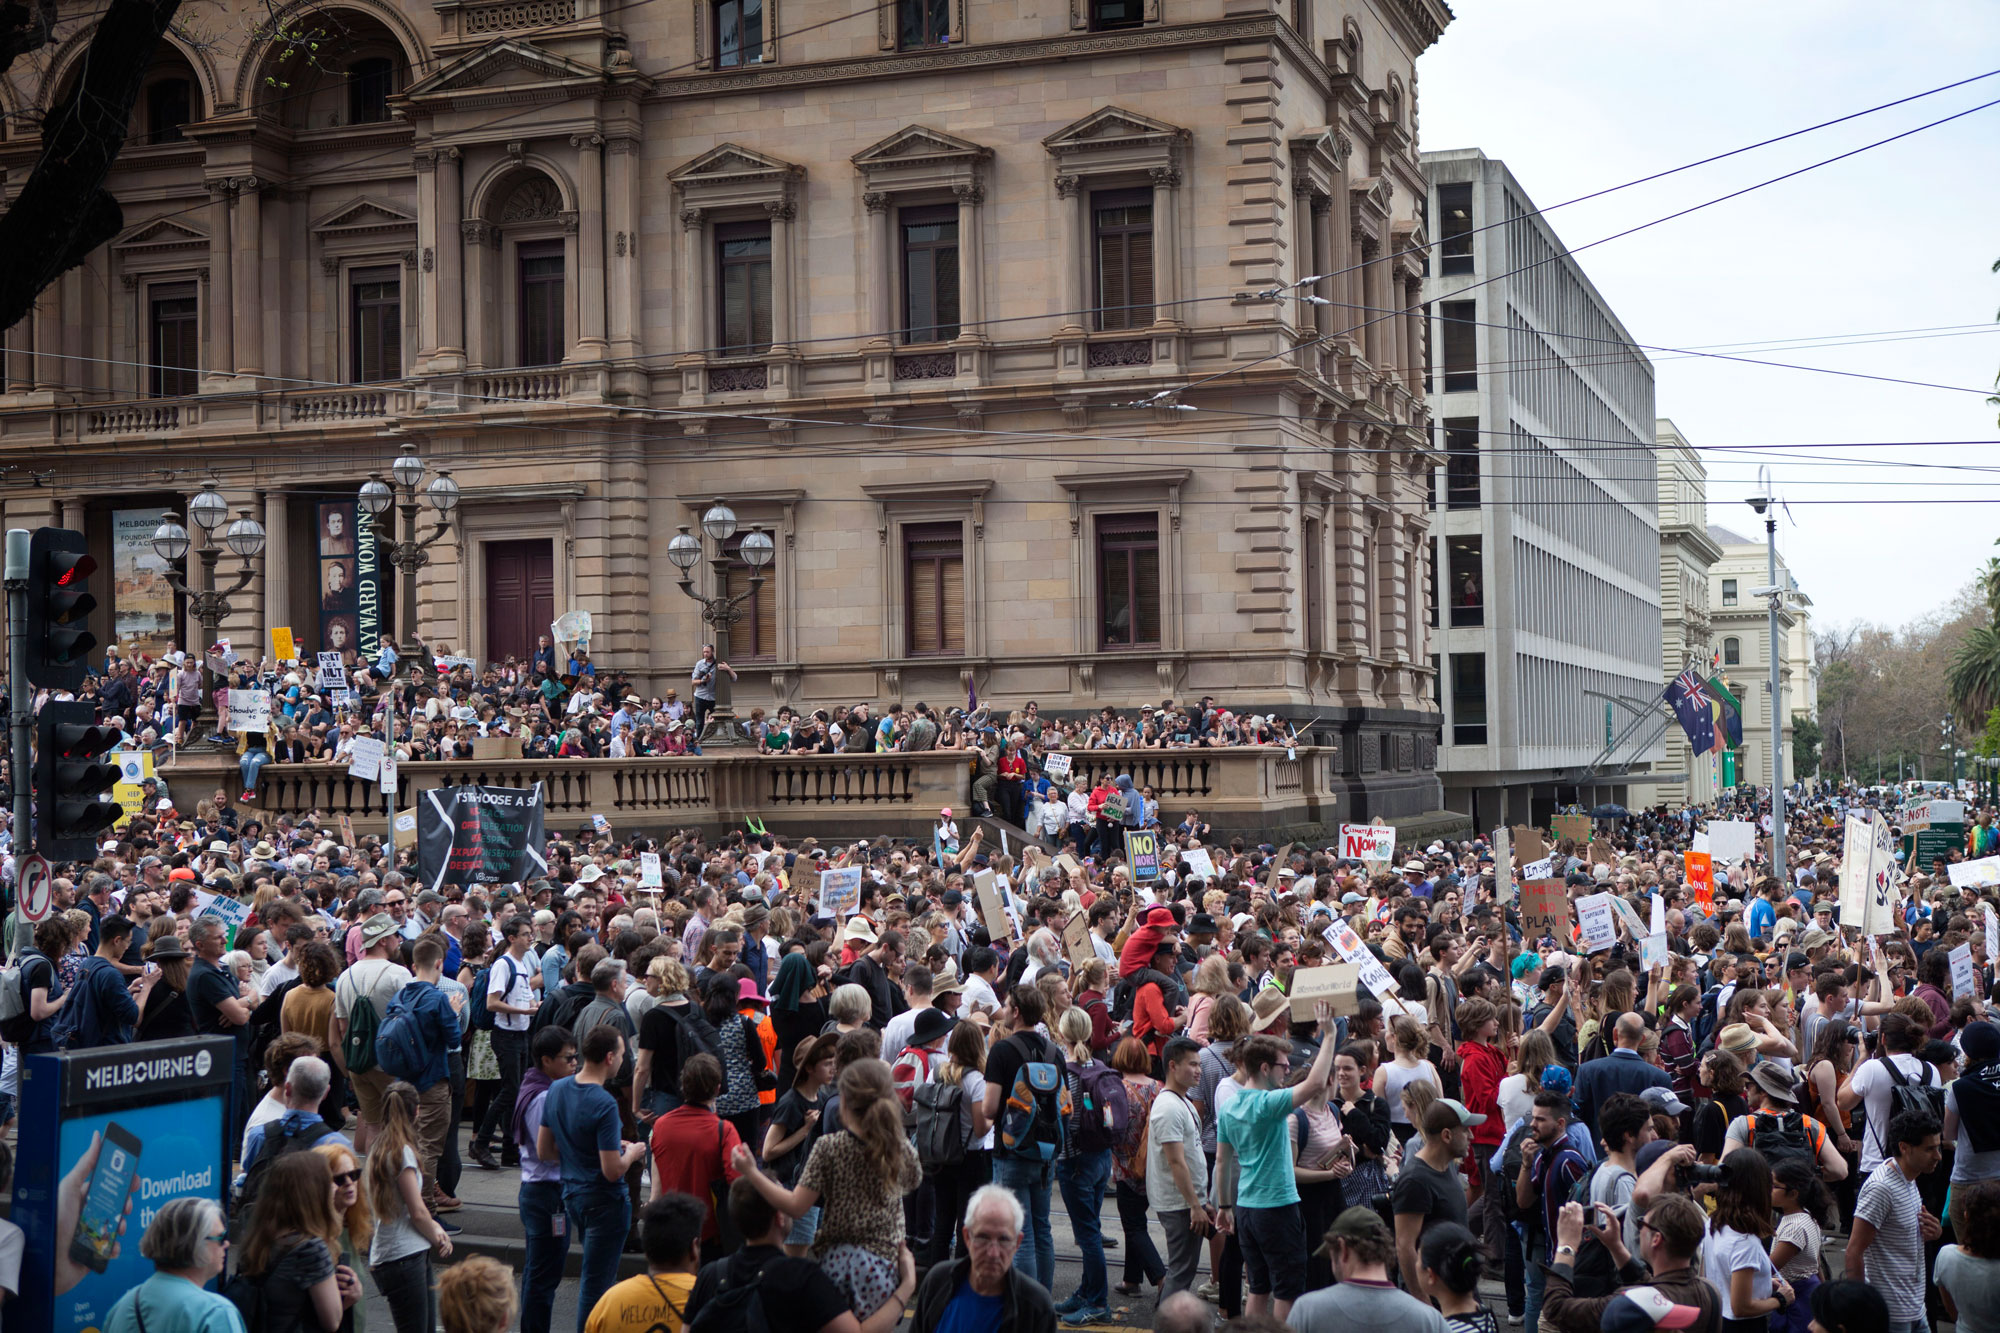 An estimated 100,000 spill around the front of the Old Treasury Building in Melbourne for the Global Climate Strike Rally. Photo: Fangying Zhou